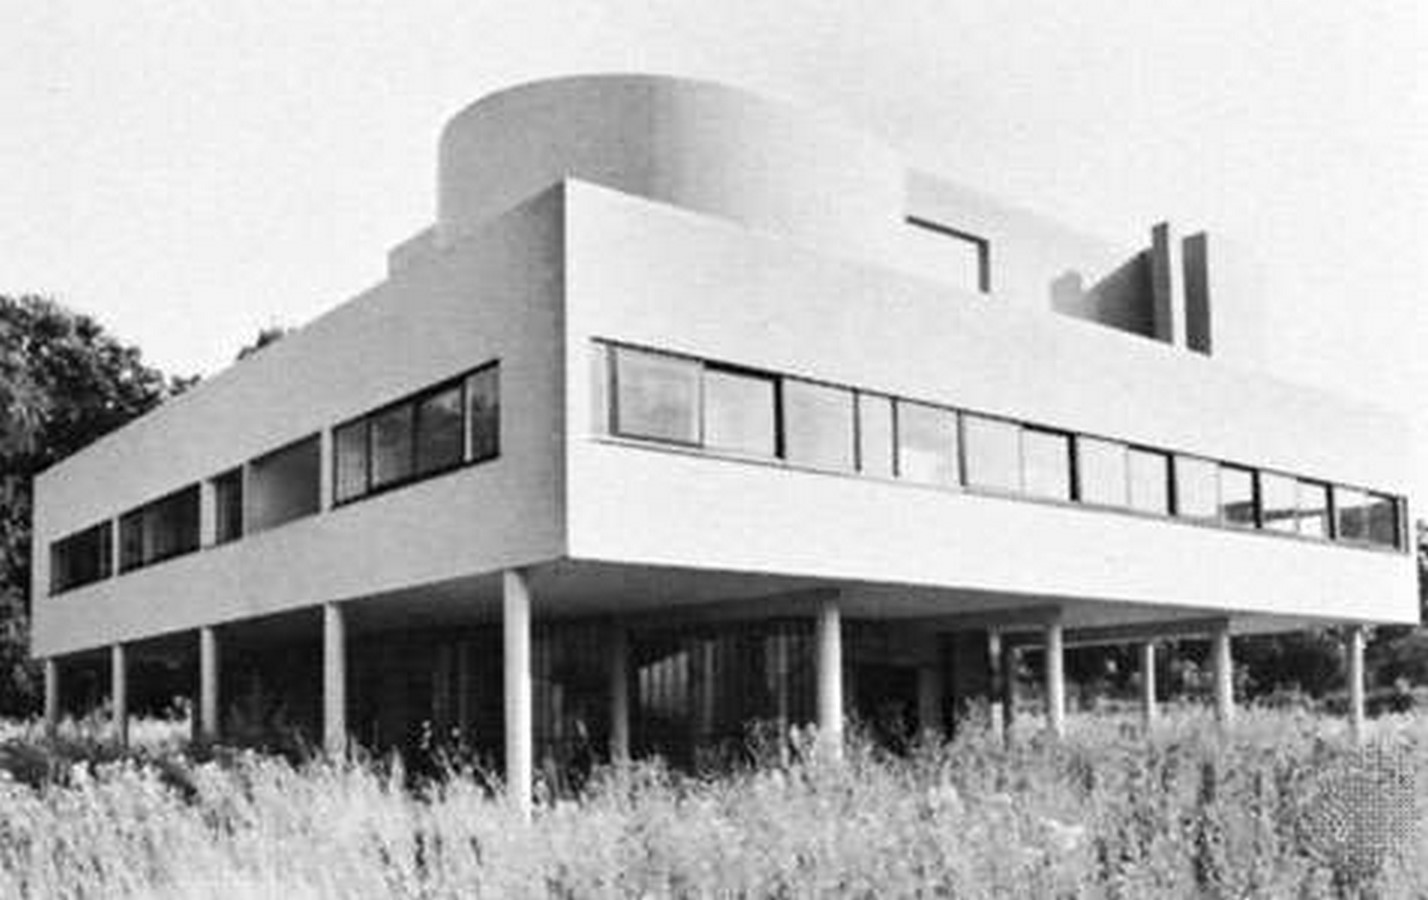 10 Buildings that pioneered architectural styles in the history of architecture - Sheet11